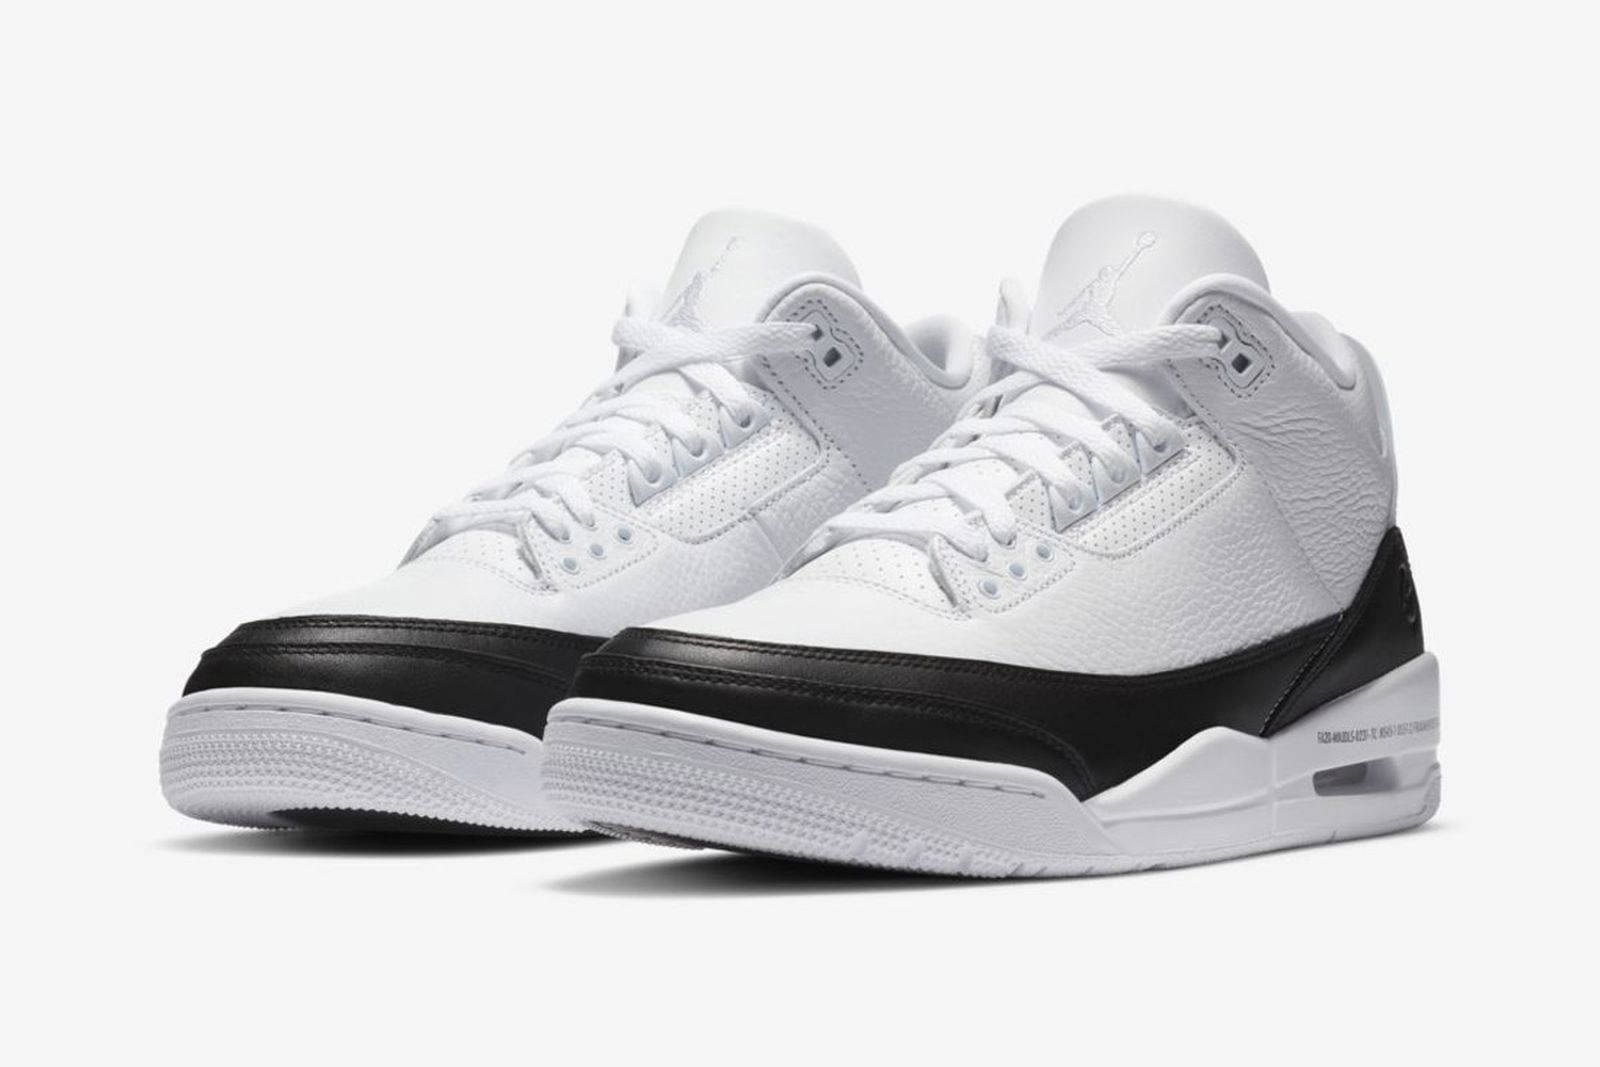 fragment-design-nike-air-jordan-3-release-date-price-product-02